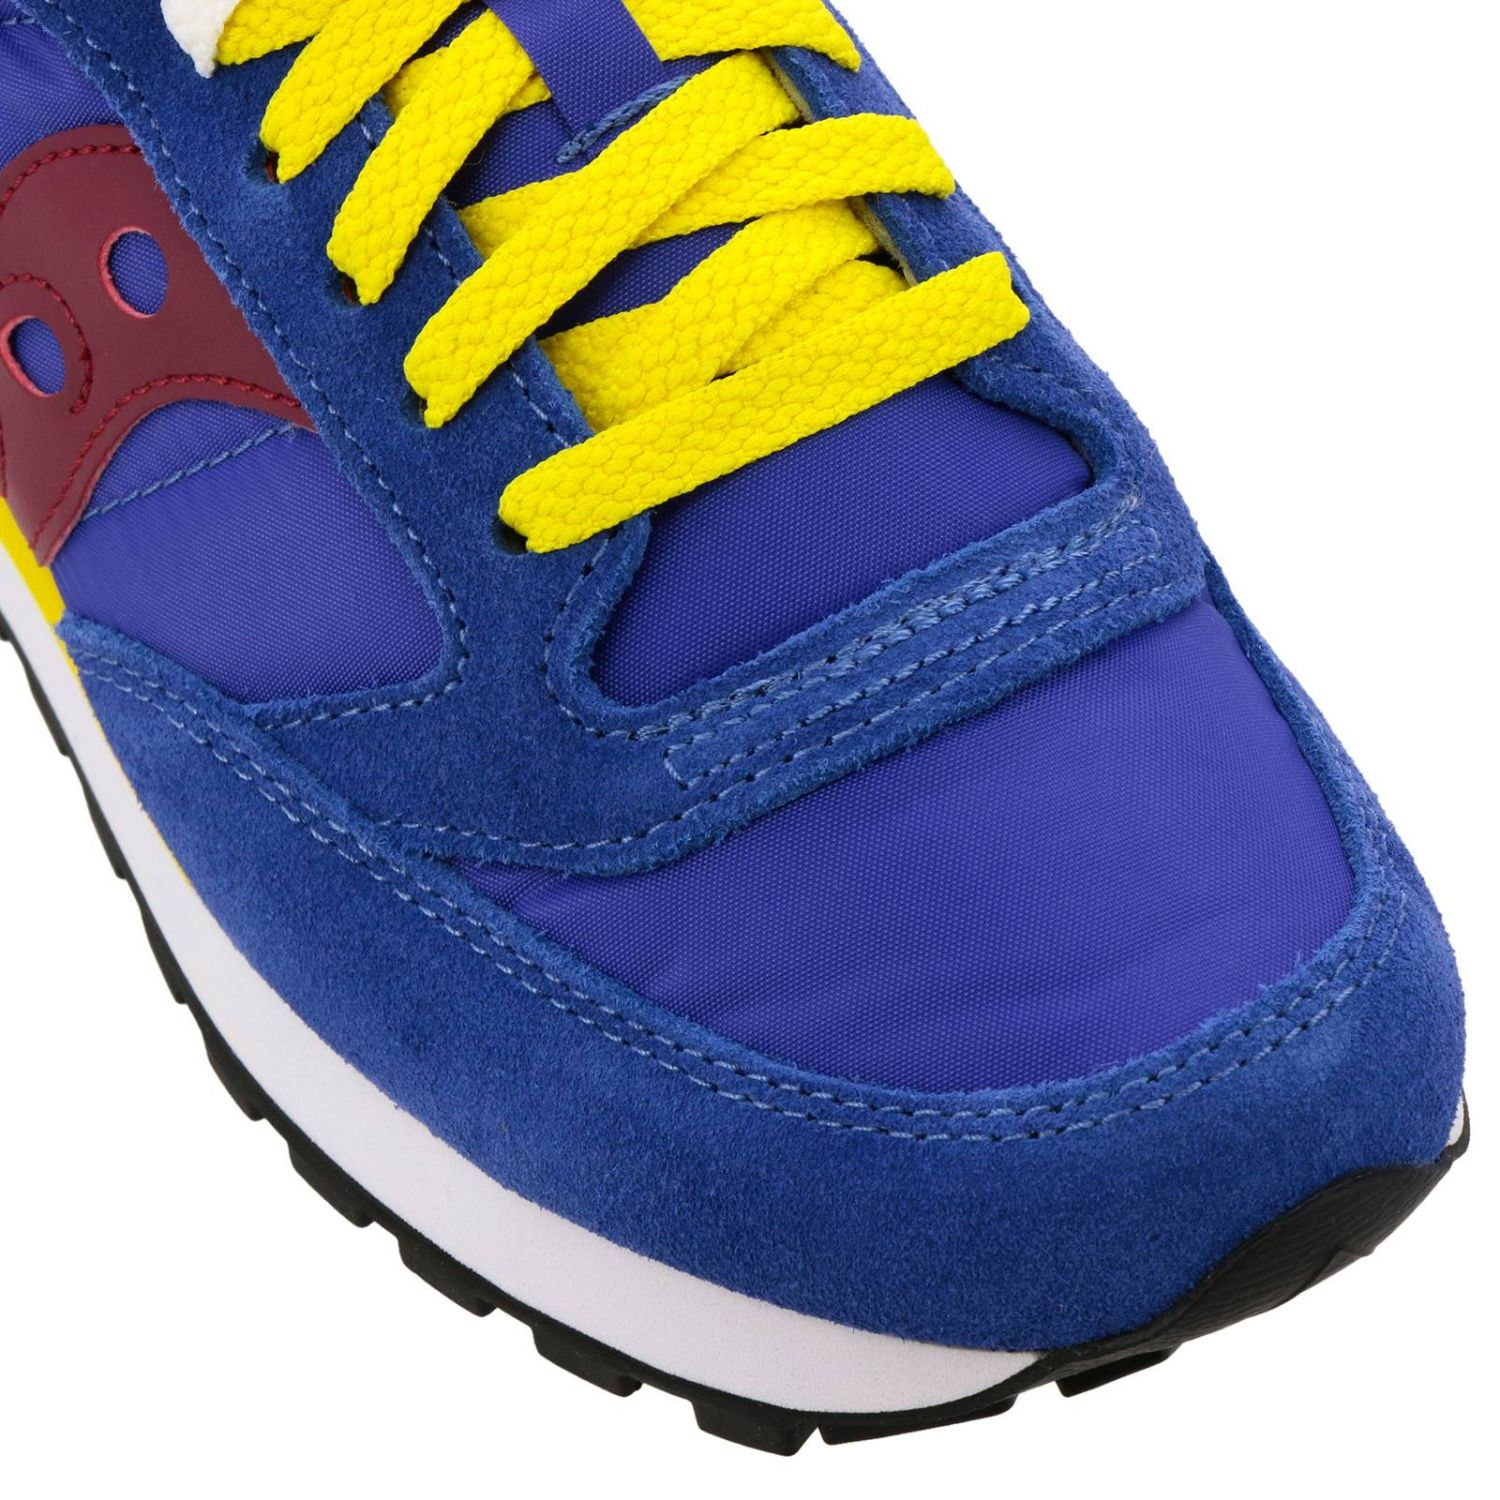 Sneakers Jazz Original Men Saucony in pelle scamosciata pelle liscia e nylon con intersuola Eva blue 3